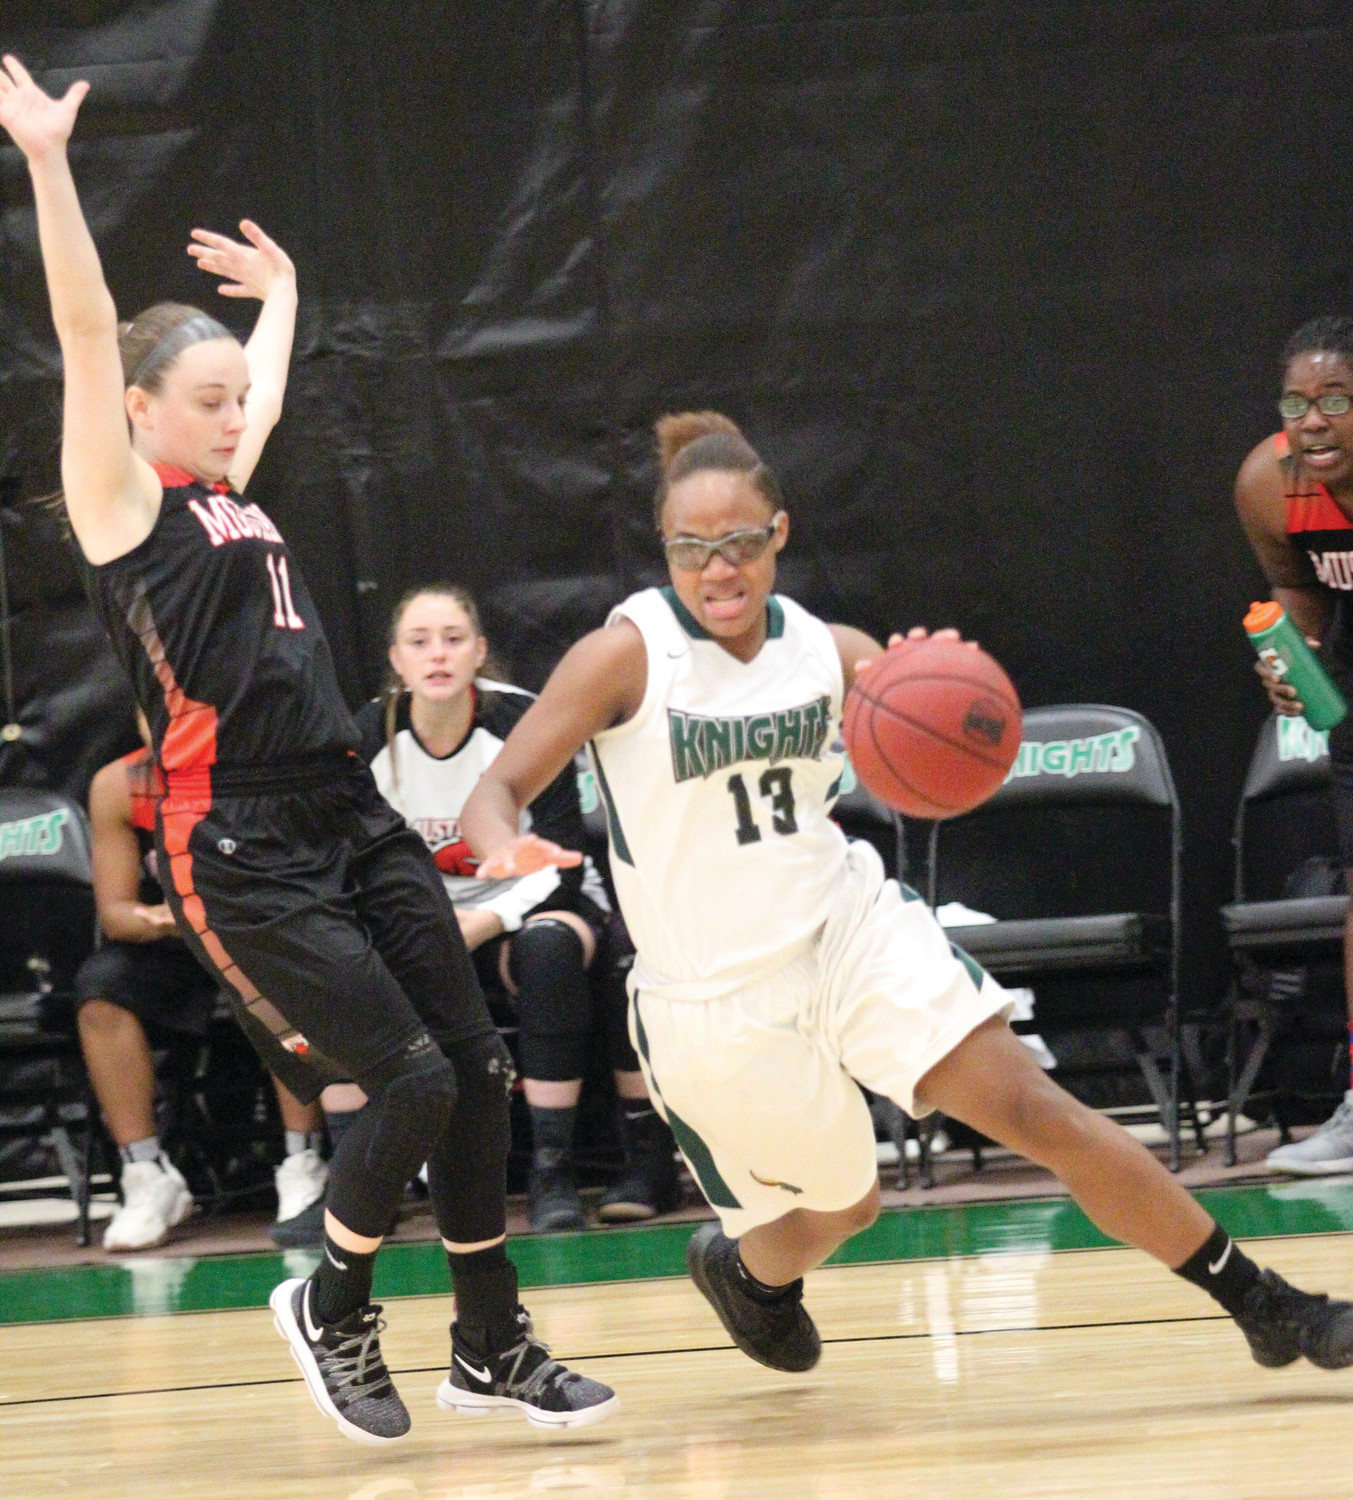 LEADING THE OFFENSE: Jada Littlejohn netted a team-high 22 points for the Lady Knights.